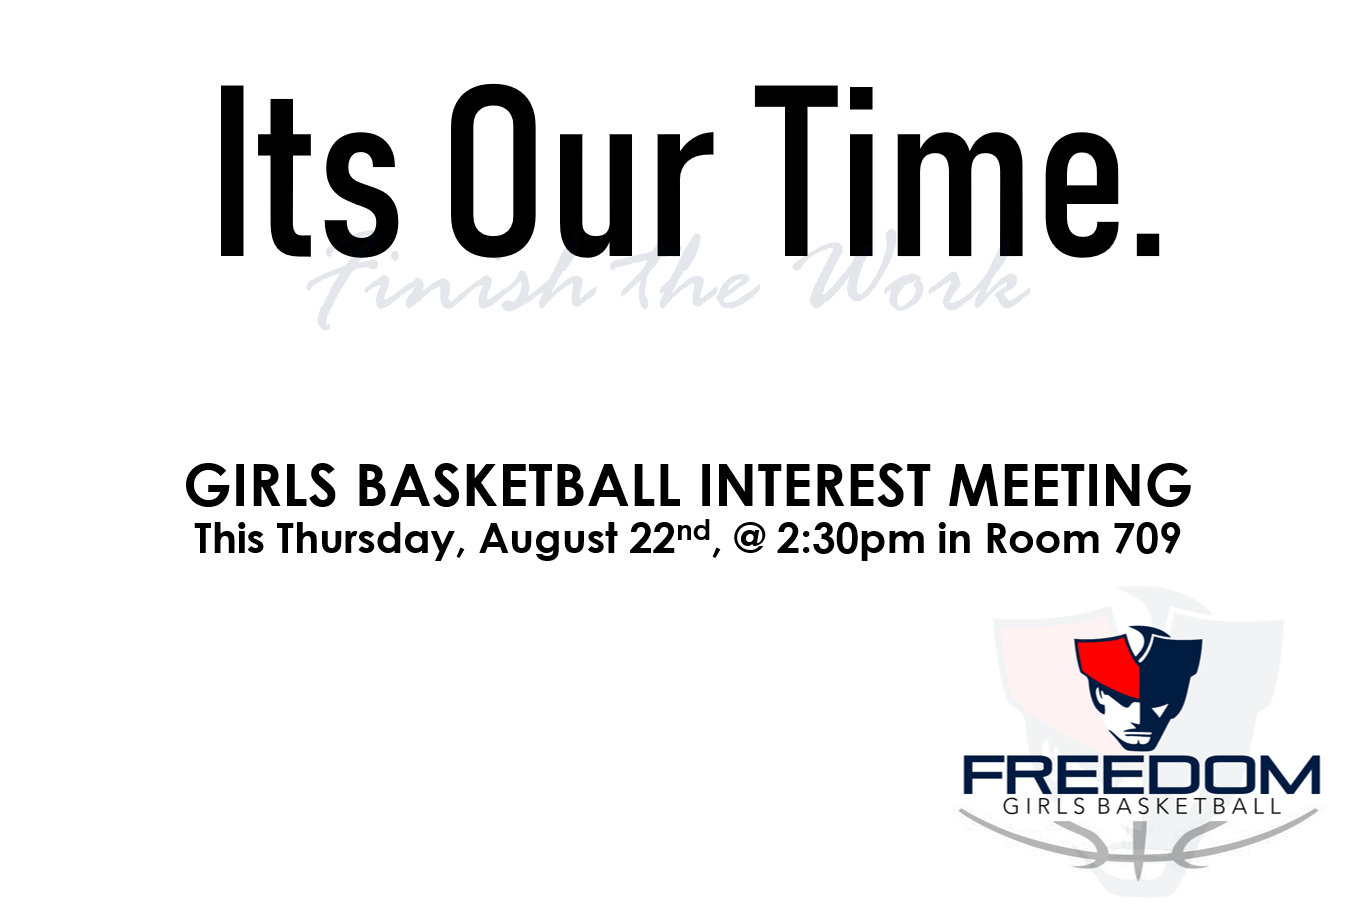 Girls Basketball Interest Meeting – This Thursday at 2:30pm